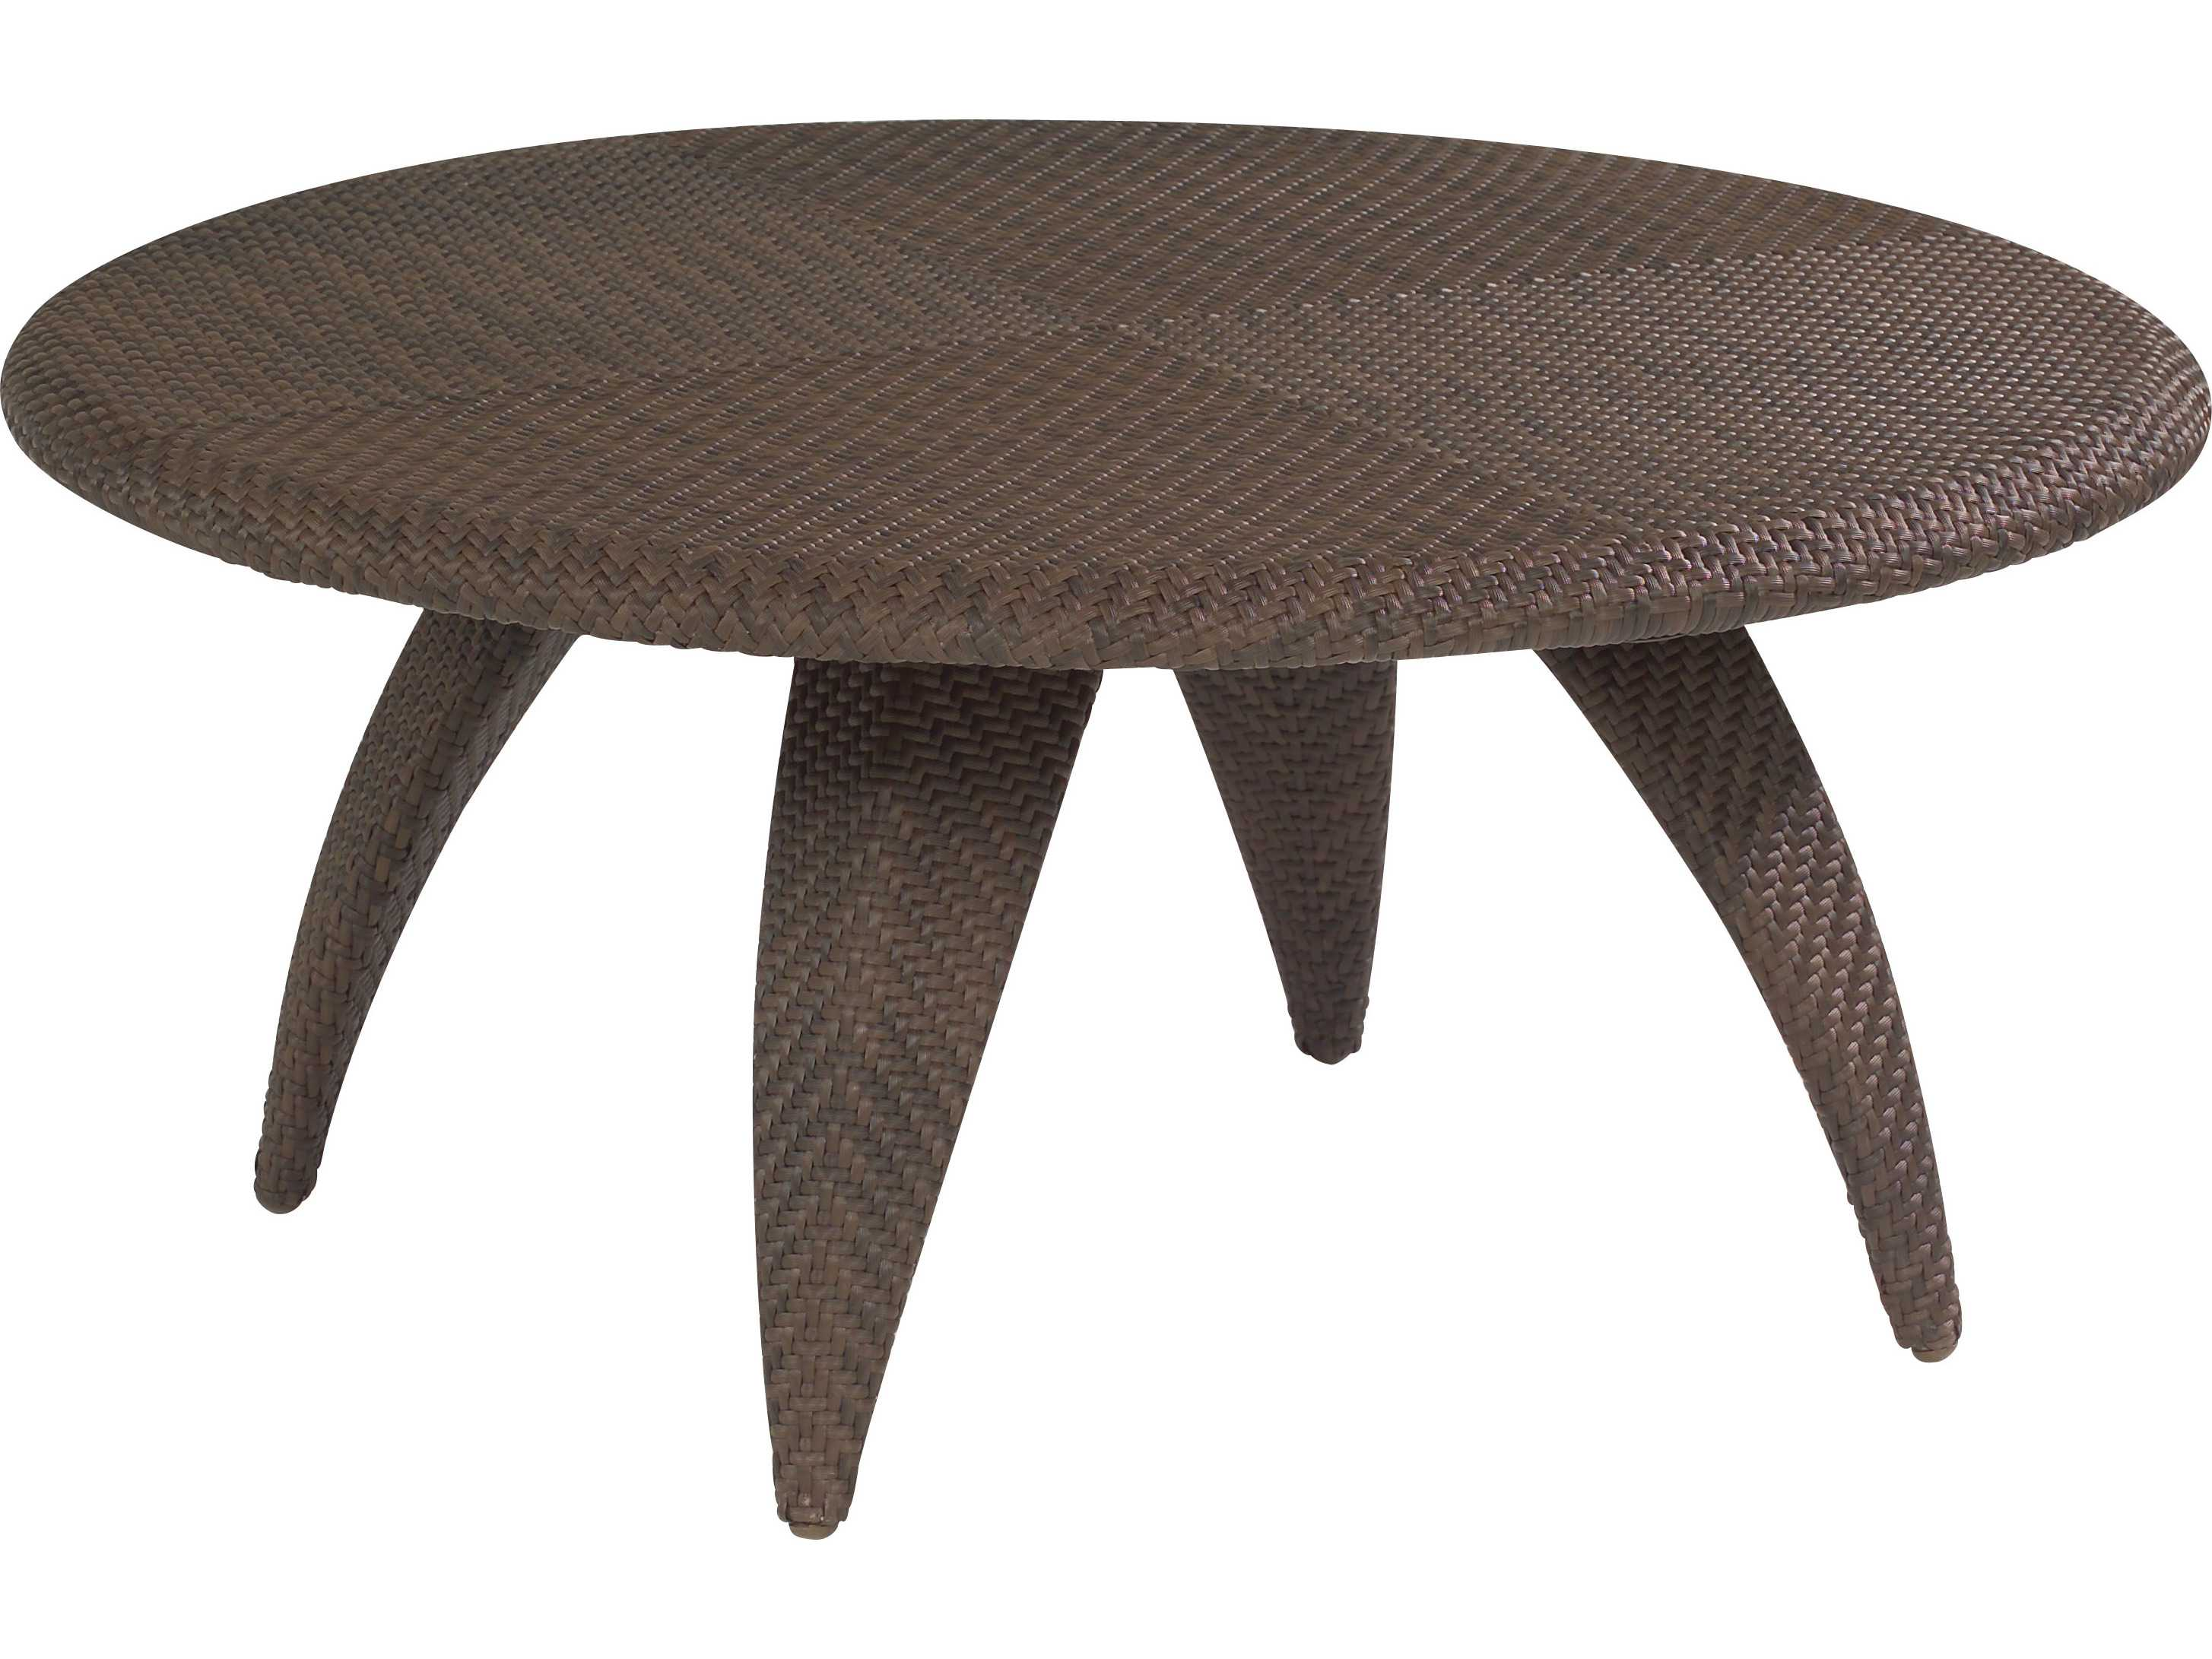 Whitecraft Bali Wicker Round 40 Coffee Table S533211